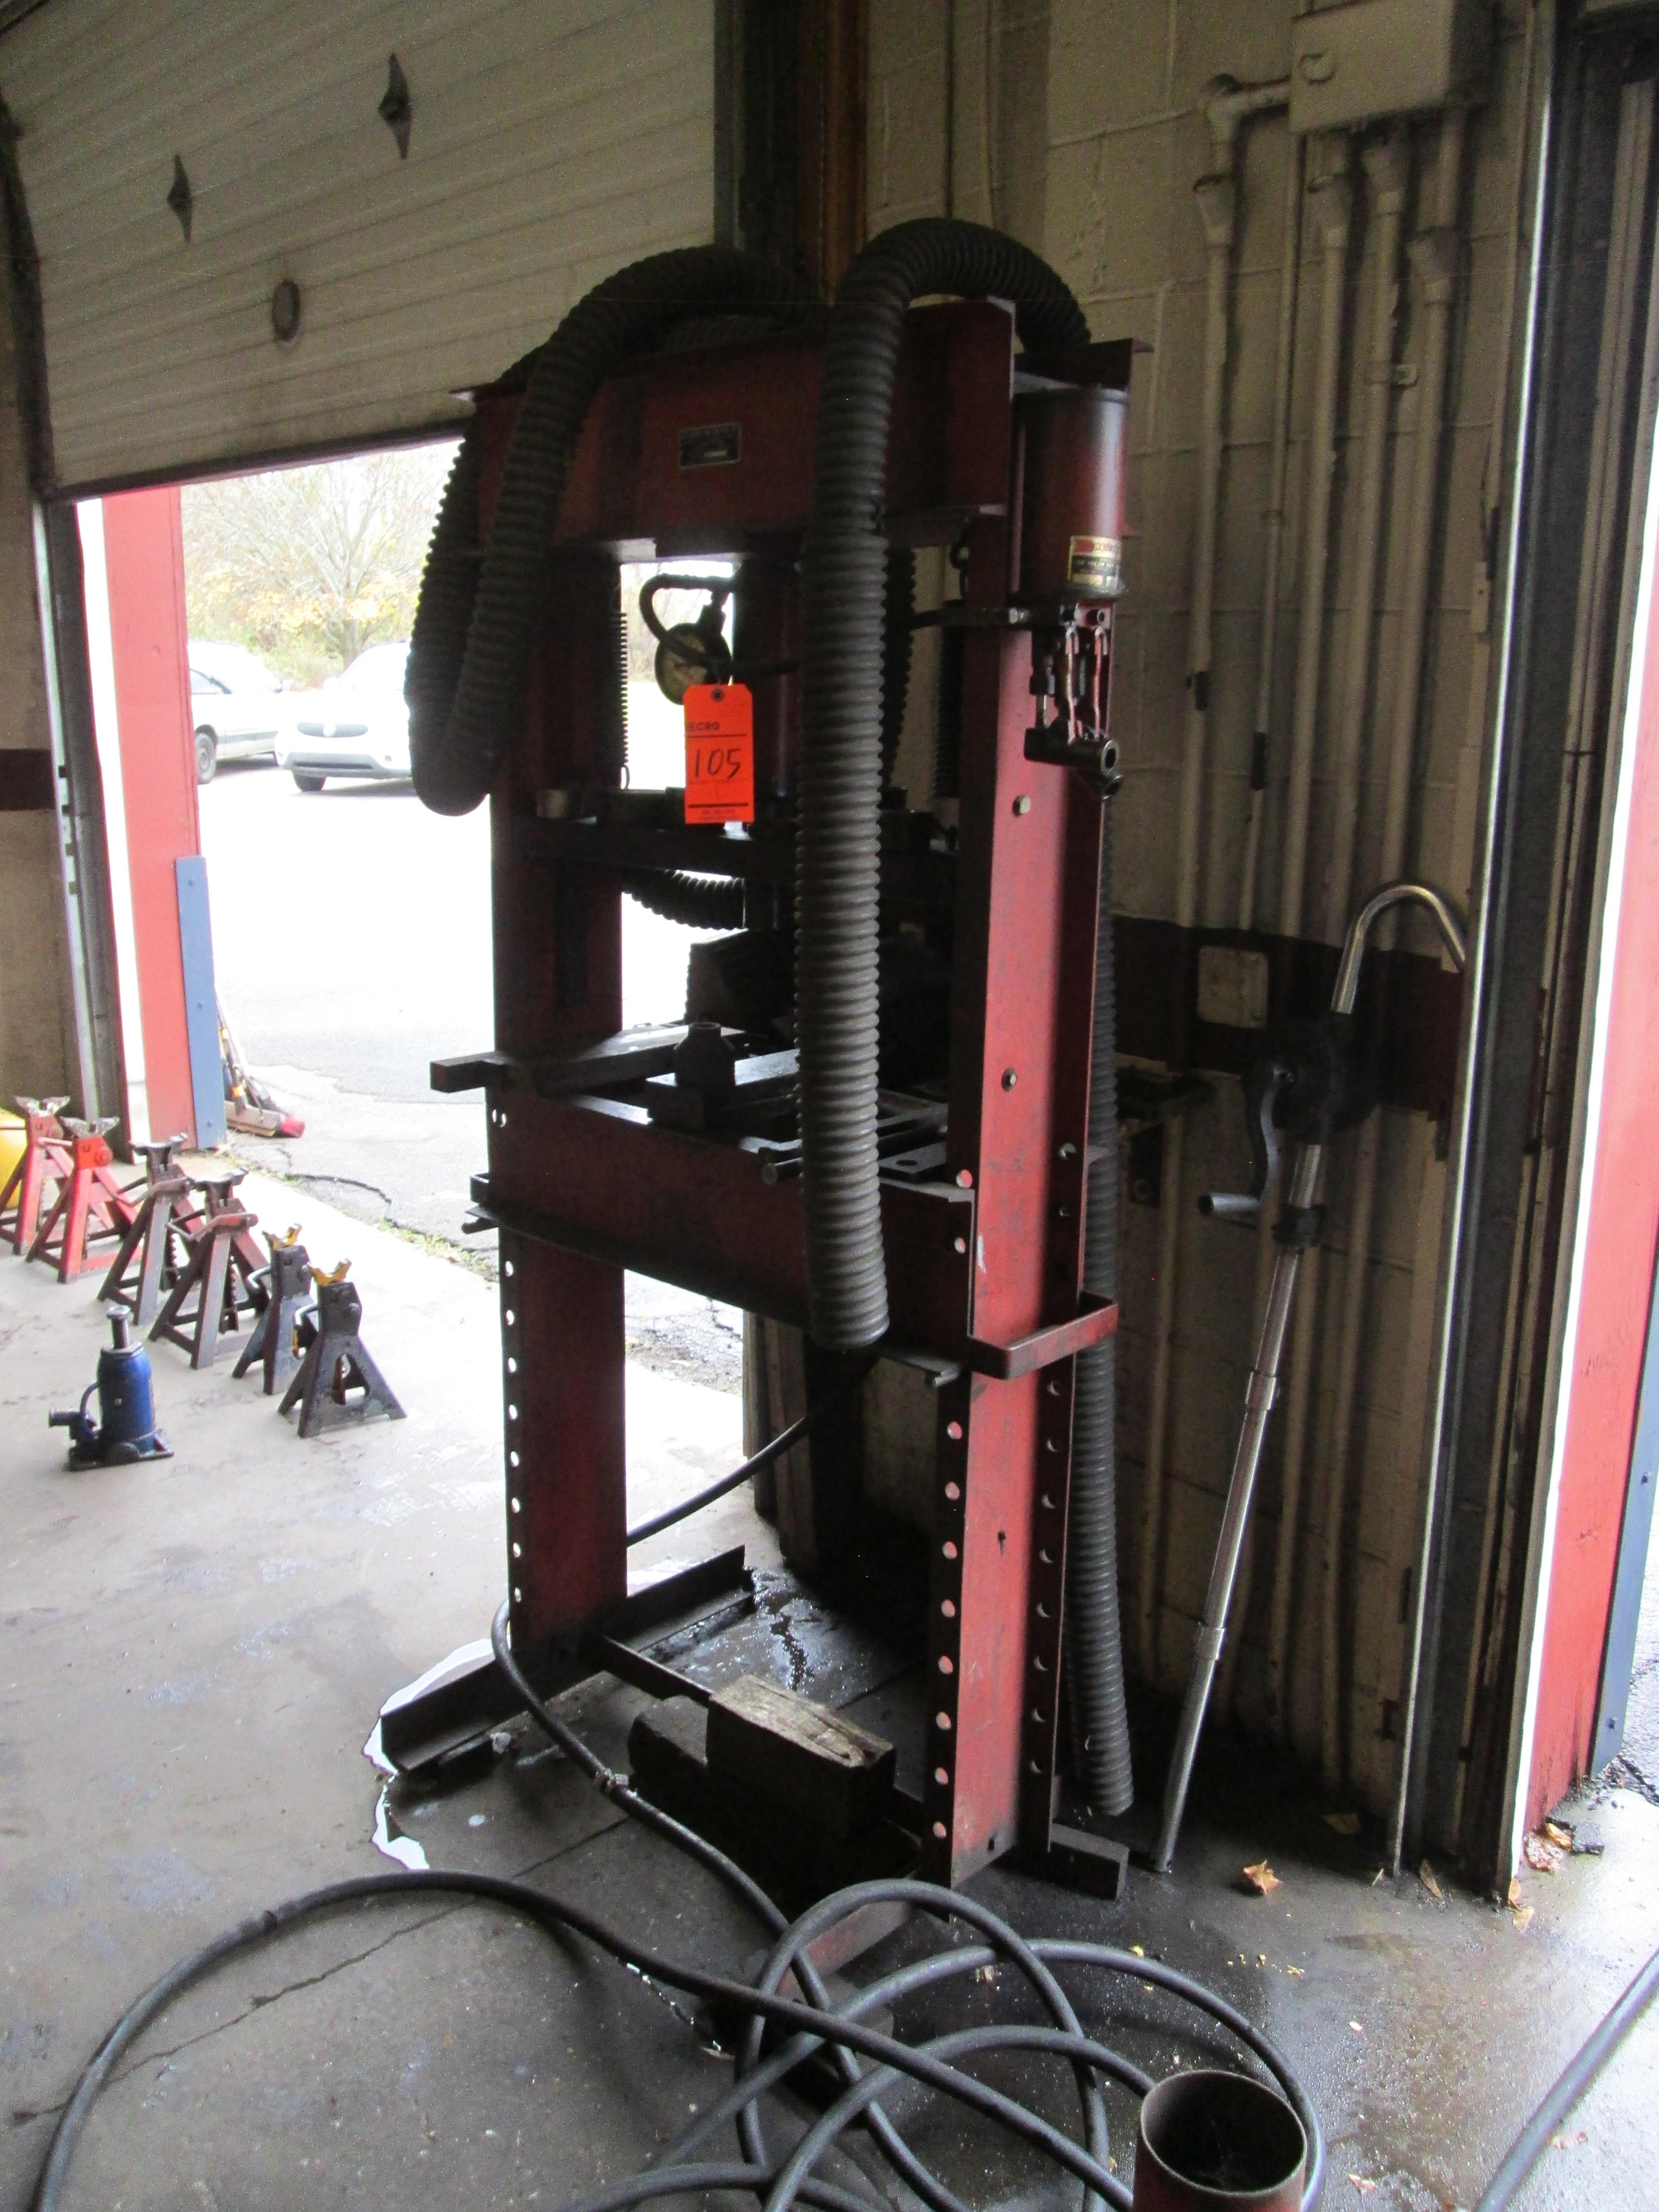 Red Arrow Tow Bar Mfg. Co. hydraulic press, H-frame type, 20 ton cap., m/n, s/n not available - Image 3 of 3